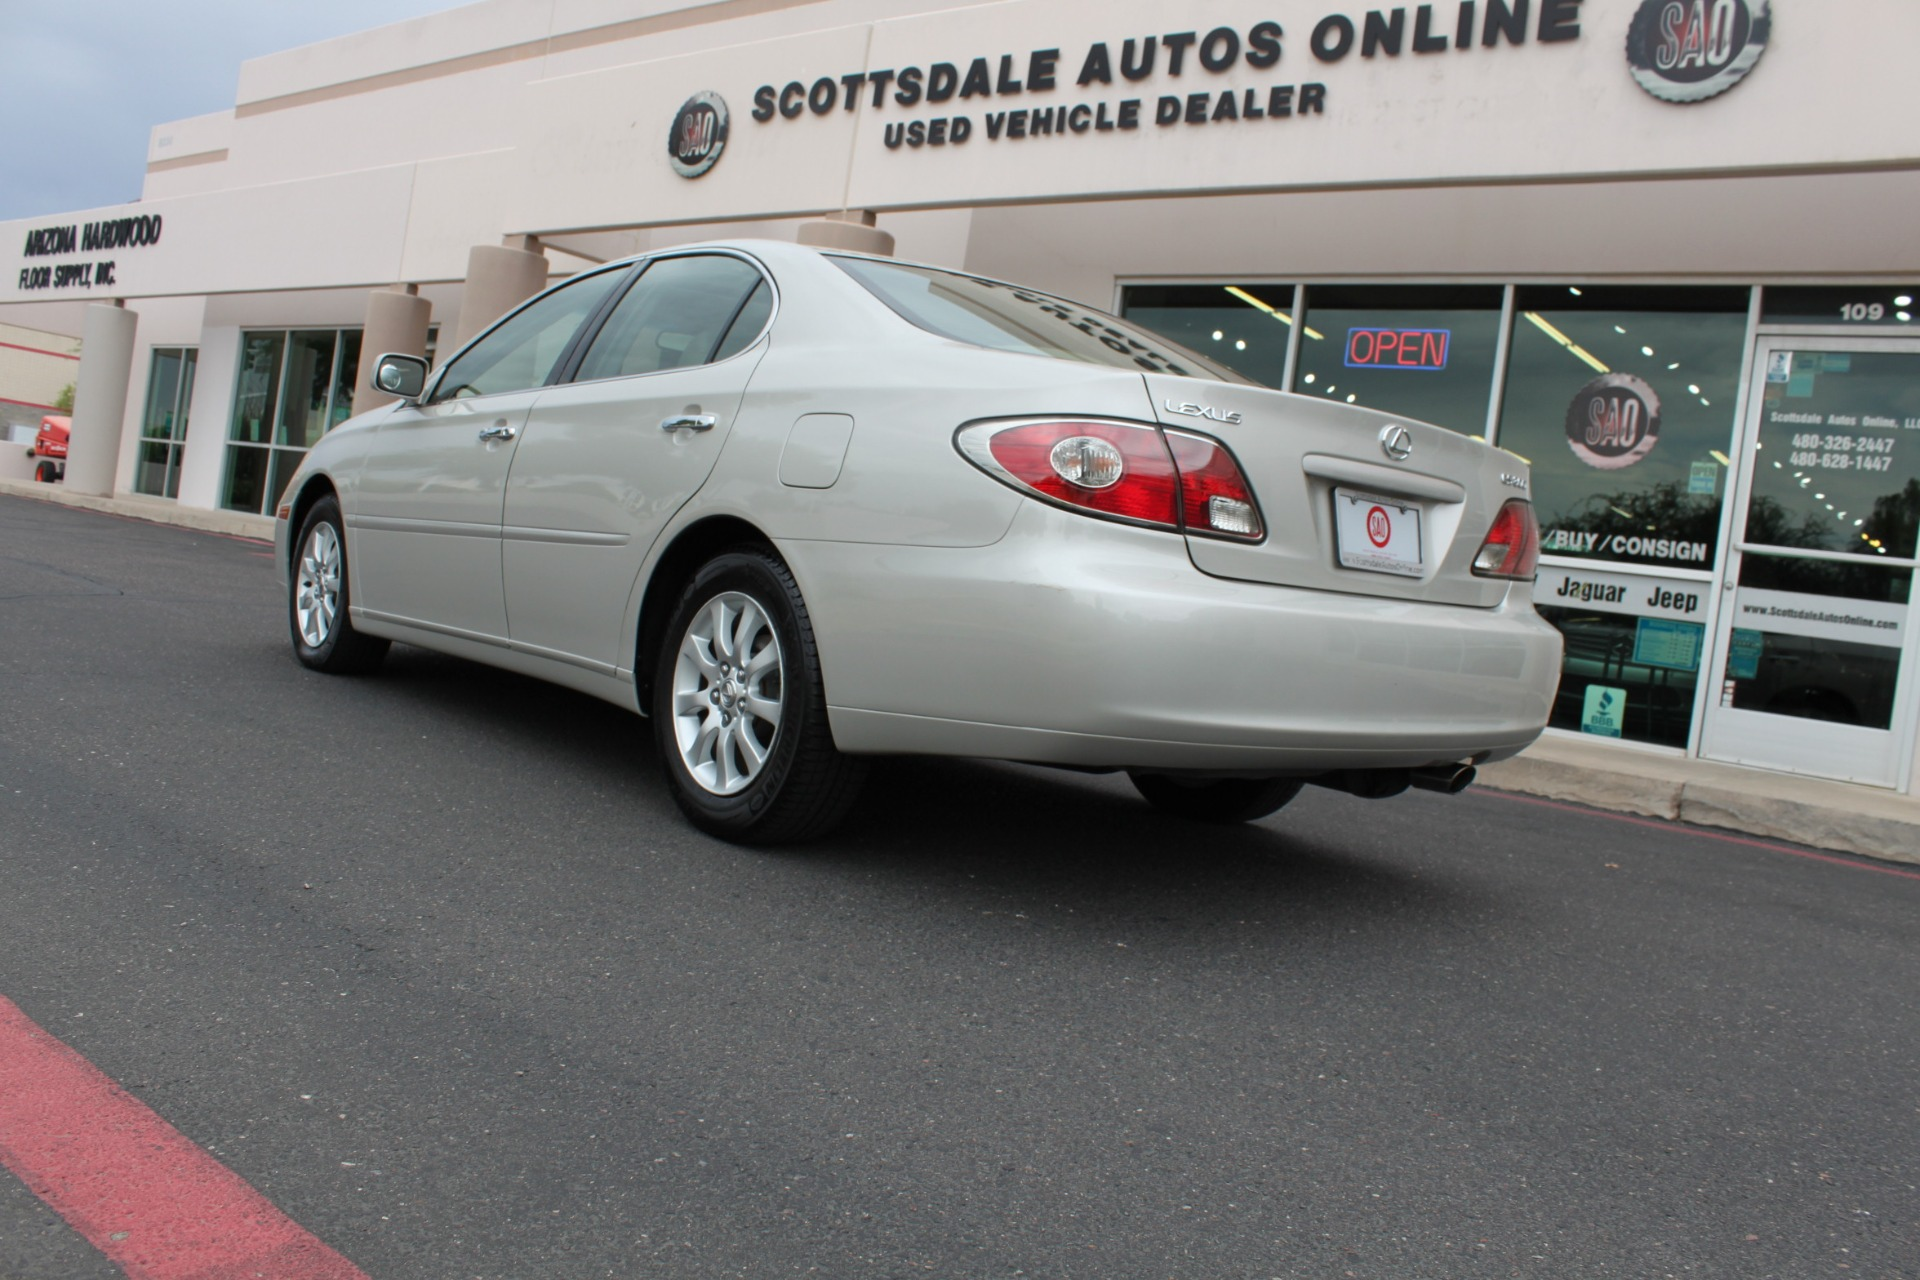 Used-2003-Lexus-ES-300-Mini